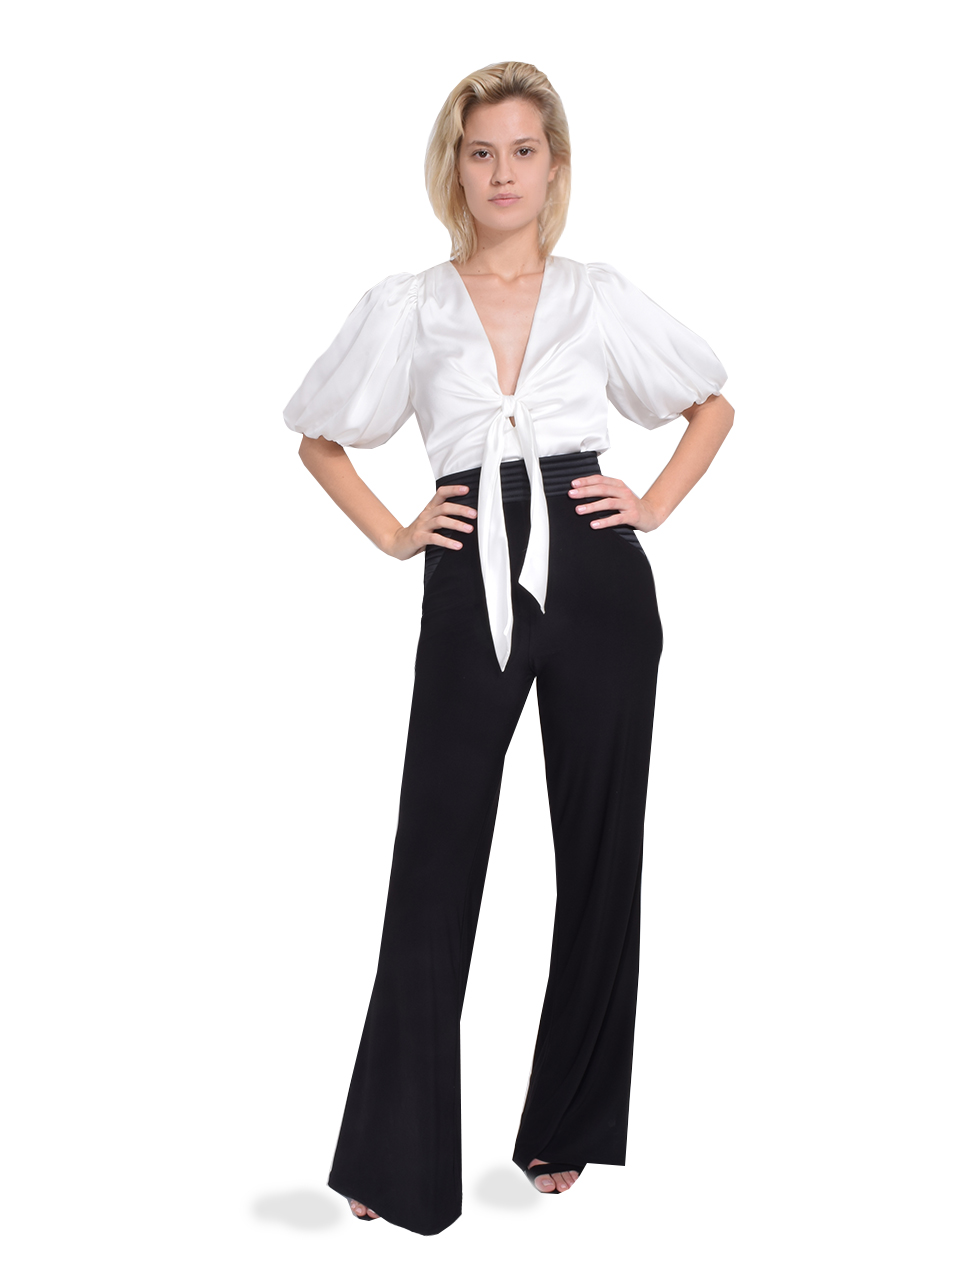 Zhivago Ready Wide Leg Pant in Black  Full Outfit